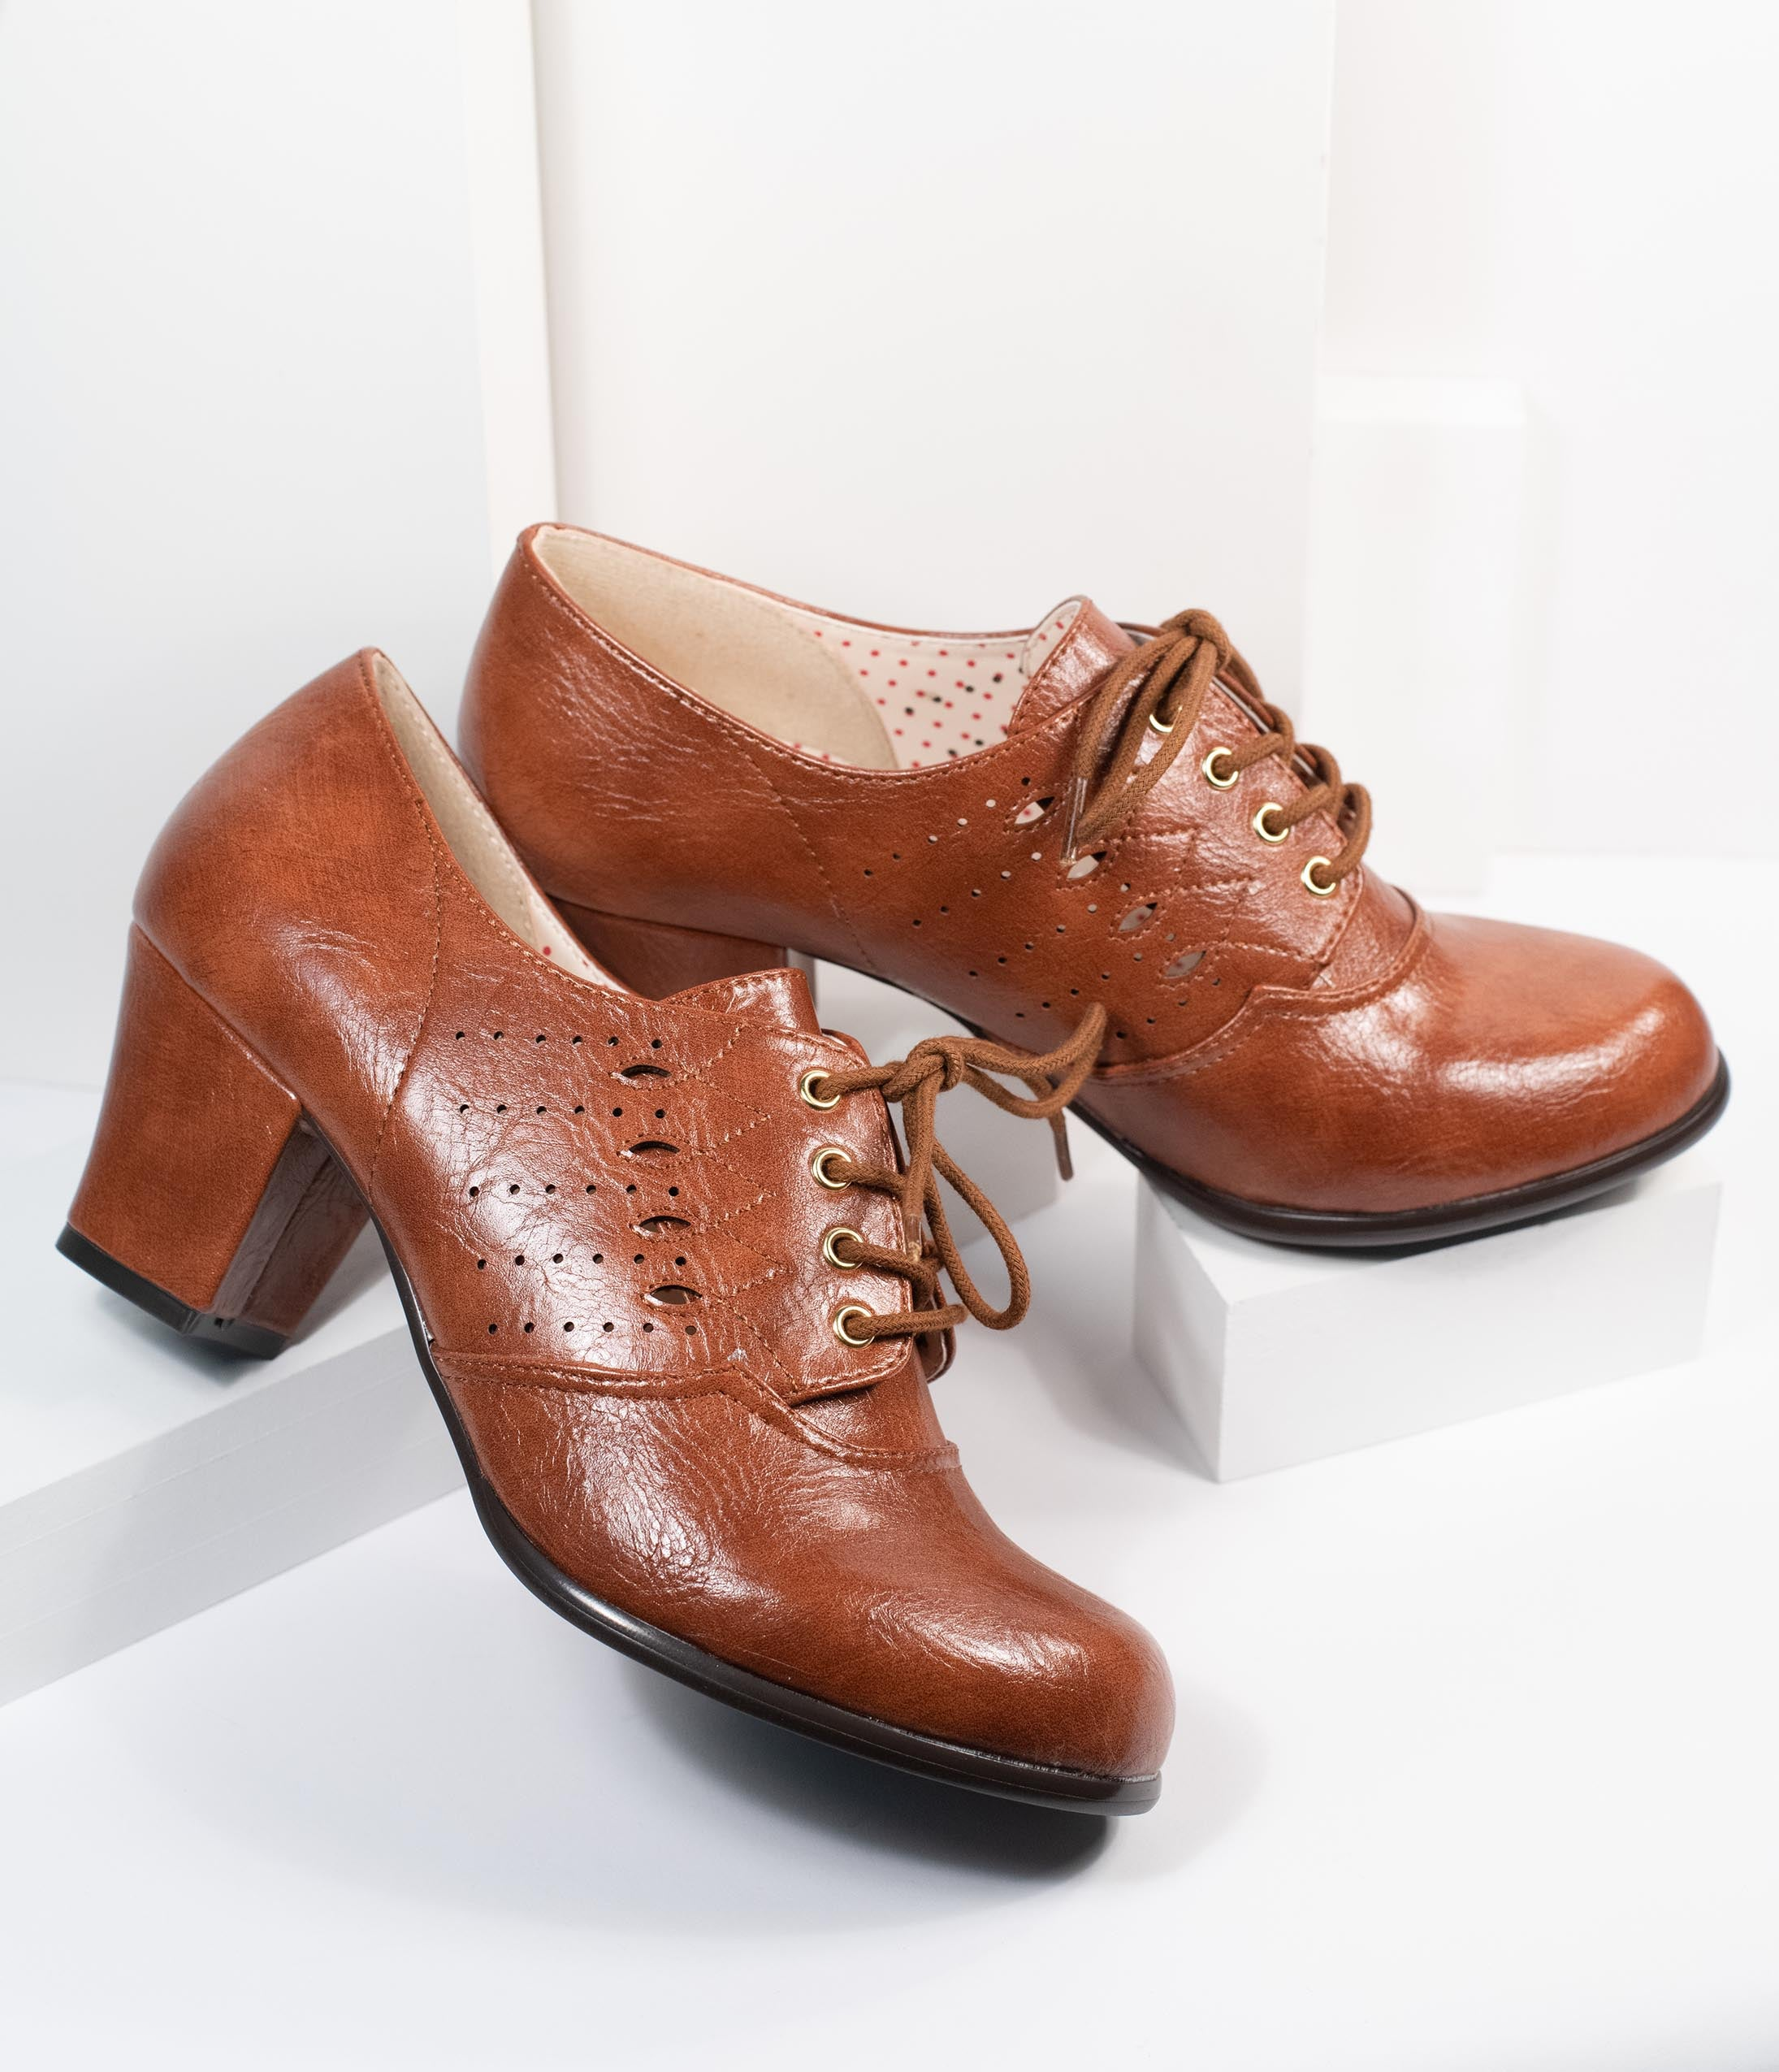 Vintage Heels, Retro Heels, Pumps, Shoes B.a.i.t. Tan Leatherette Rosie Oxford Heel $74.00 AT vintagedancer.com